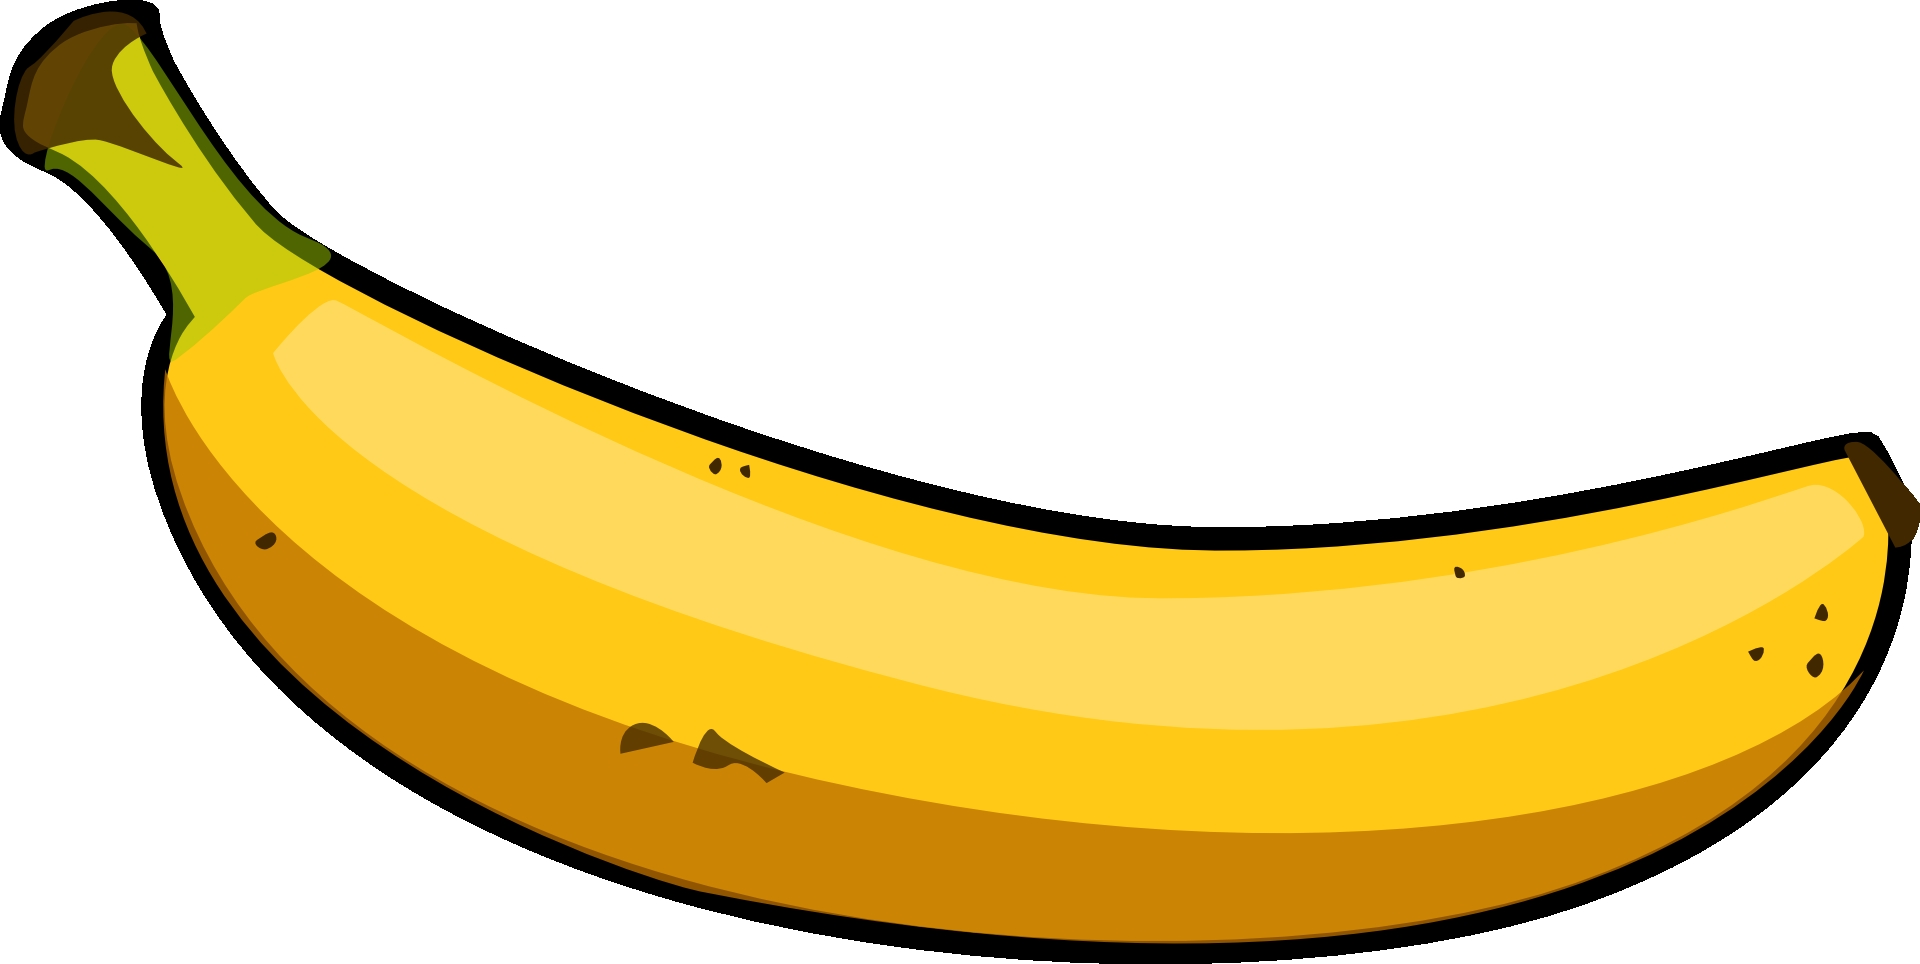 banana clipart at getdrawings com free for personal use black and white vector art golfer black and white vector art jesus